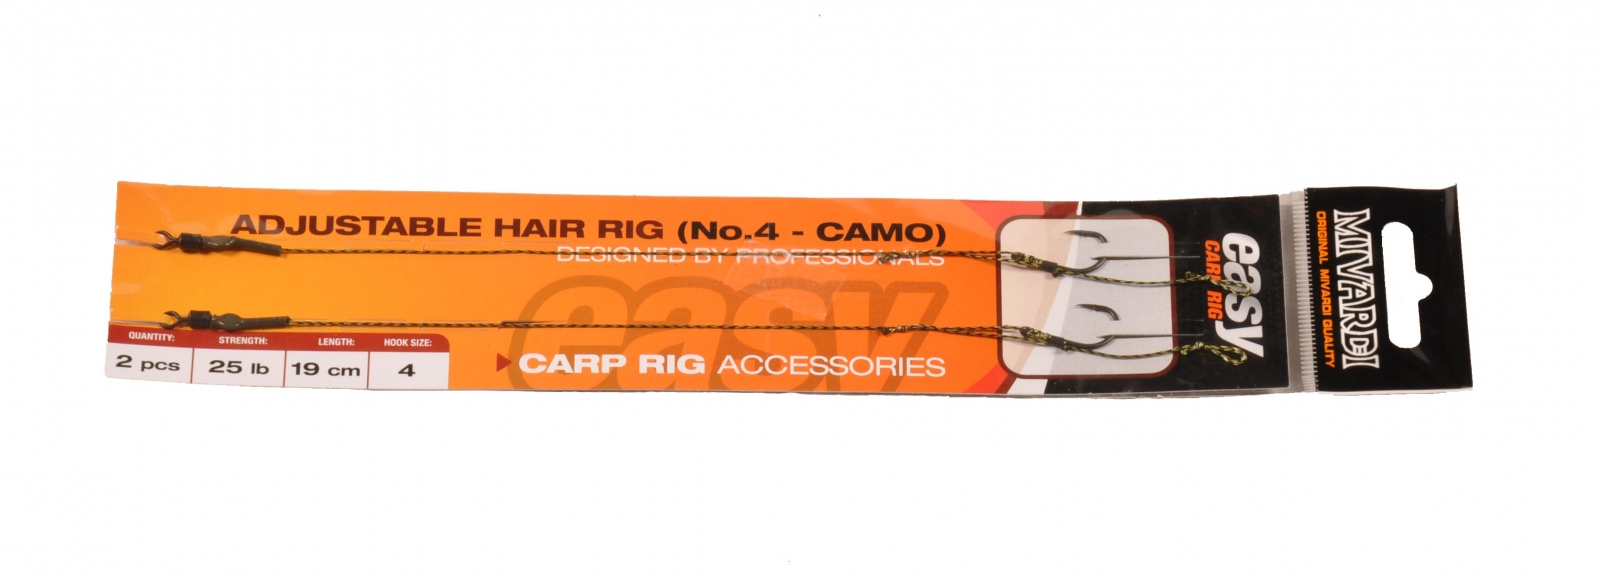 Adjustable hair rig Easy vel.4 camo